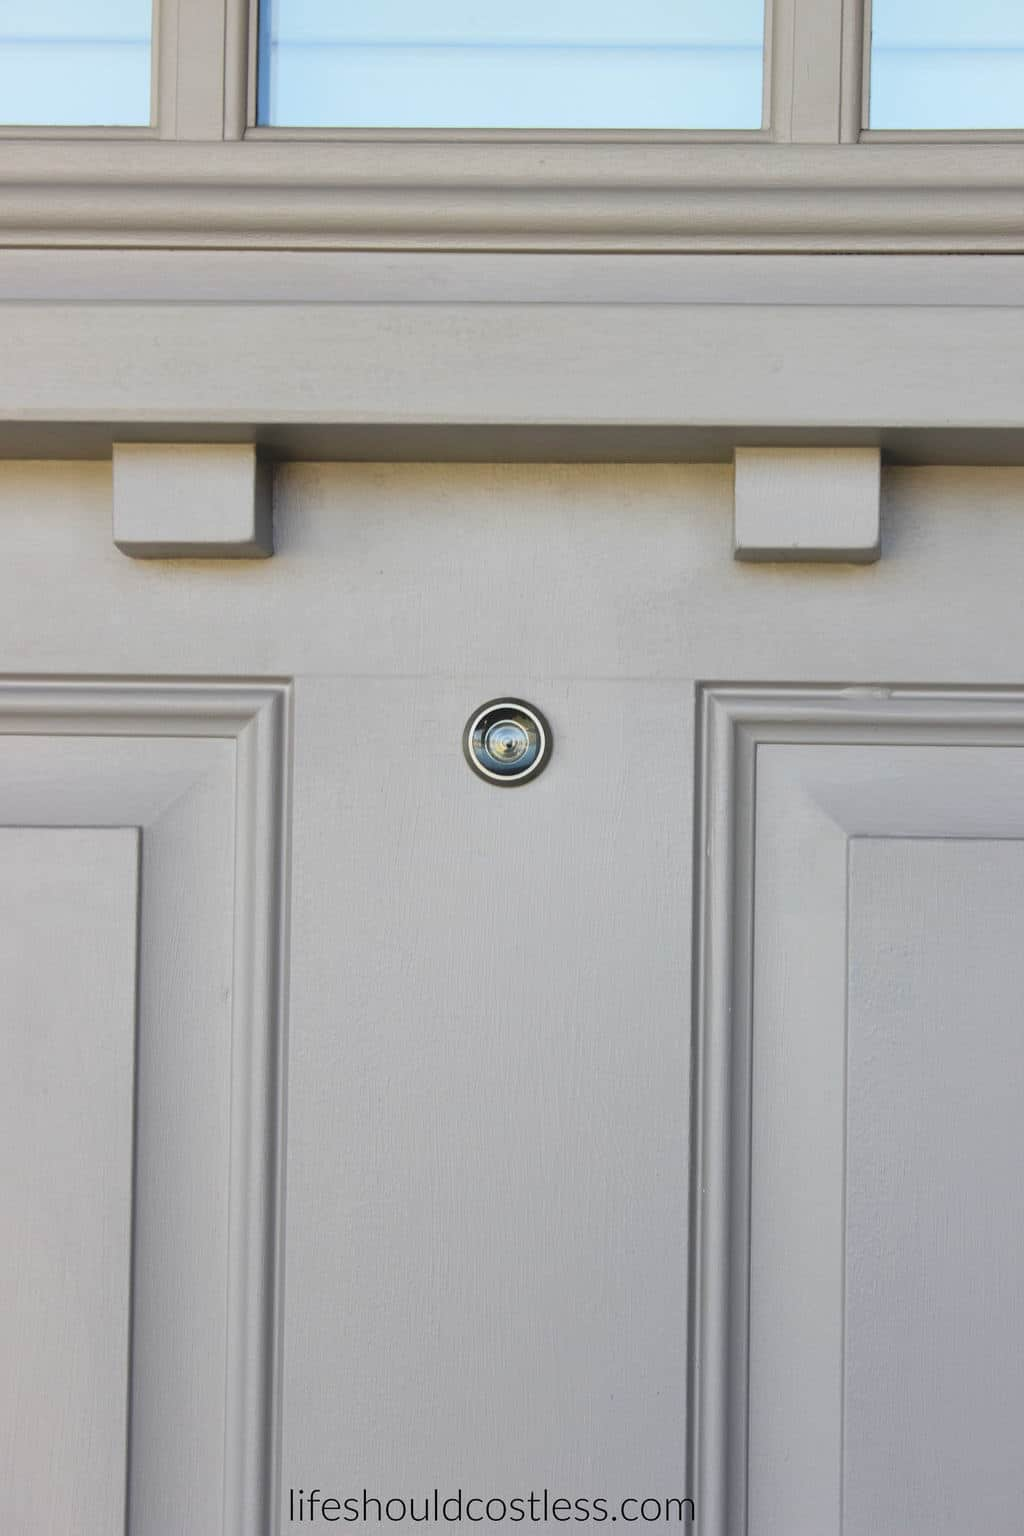 DIY How To Install A Peep Hole In Your Front Door.